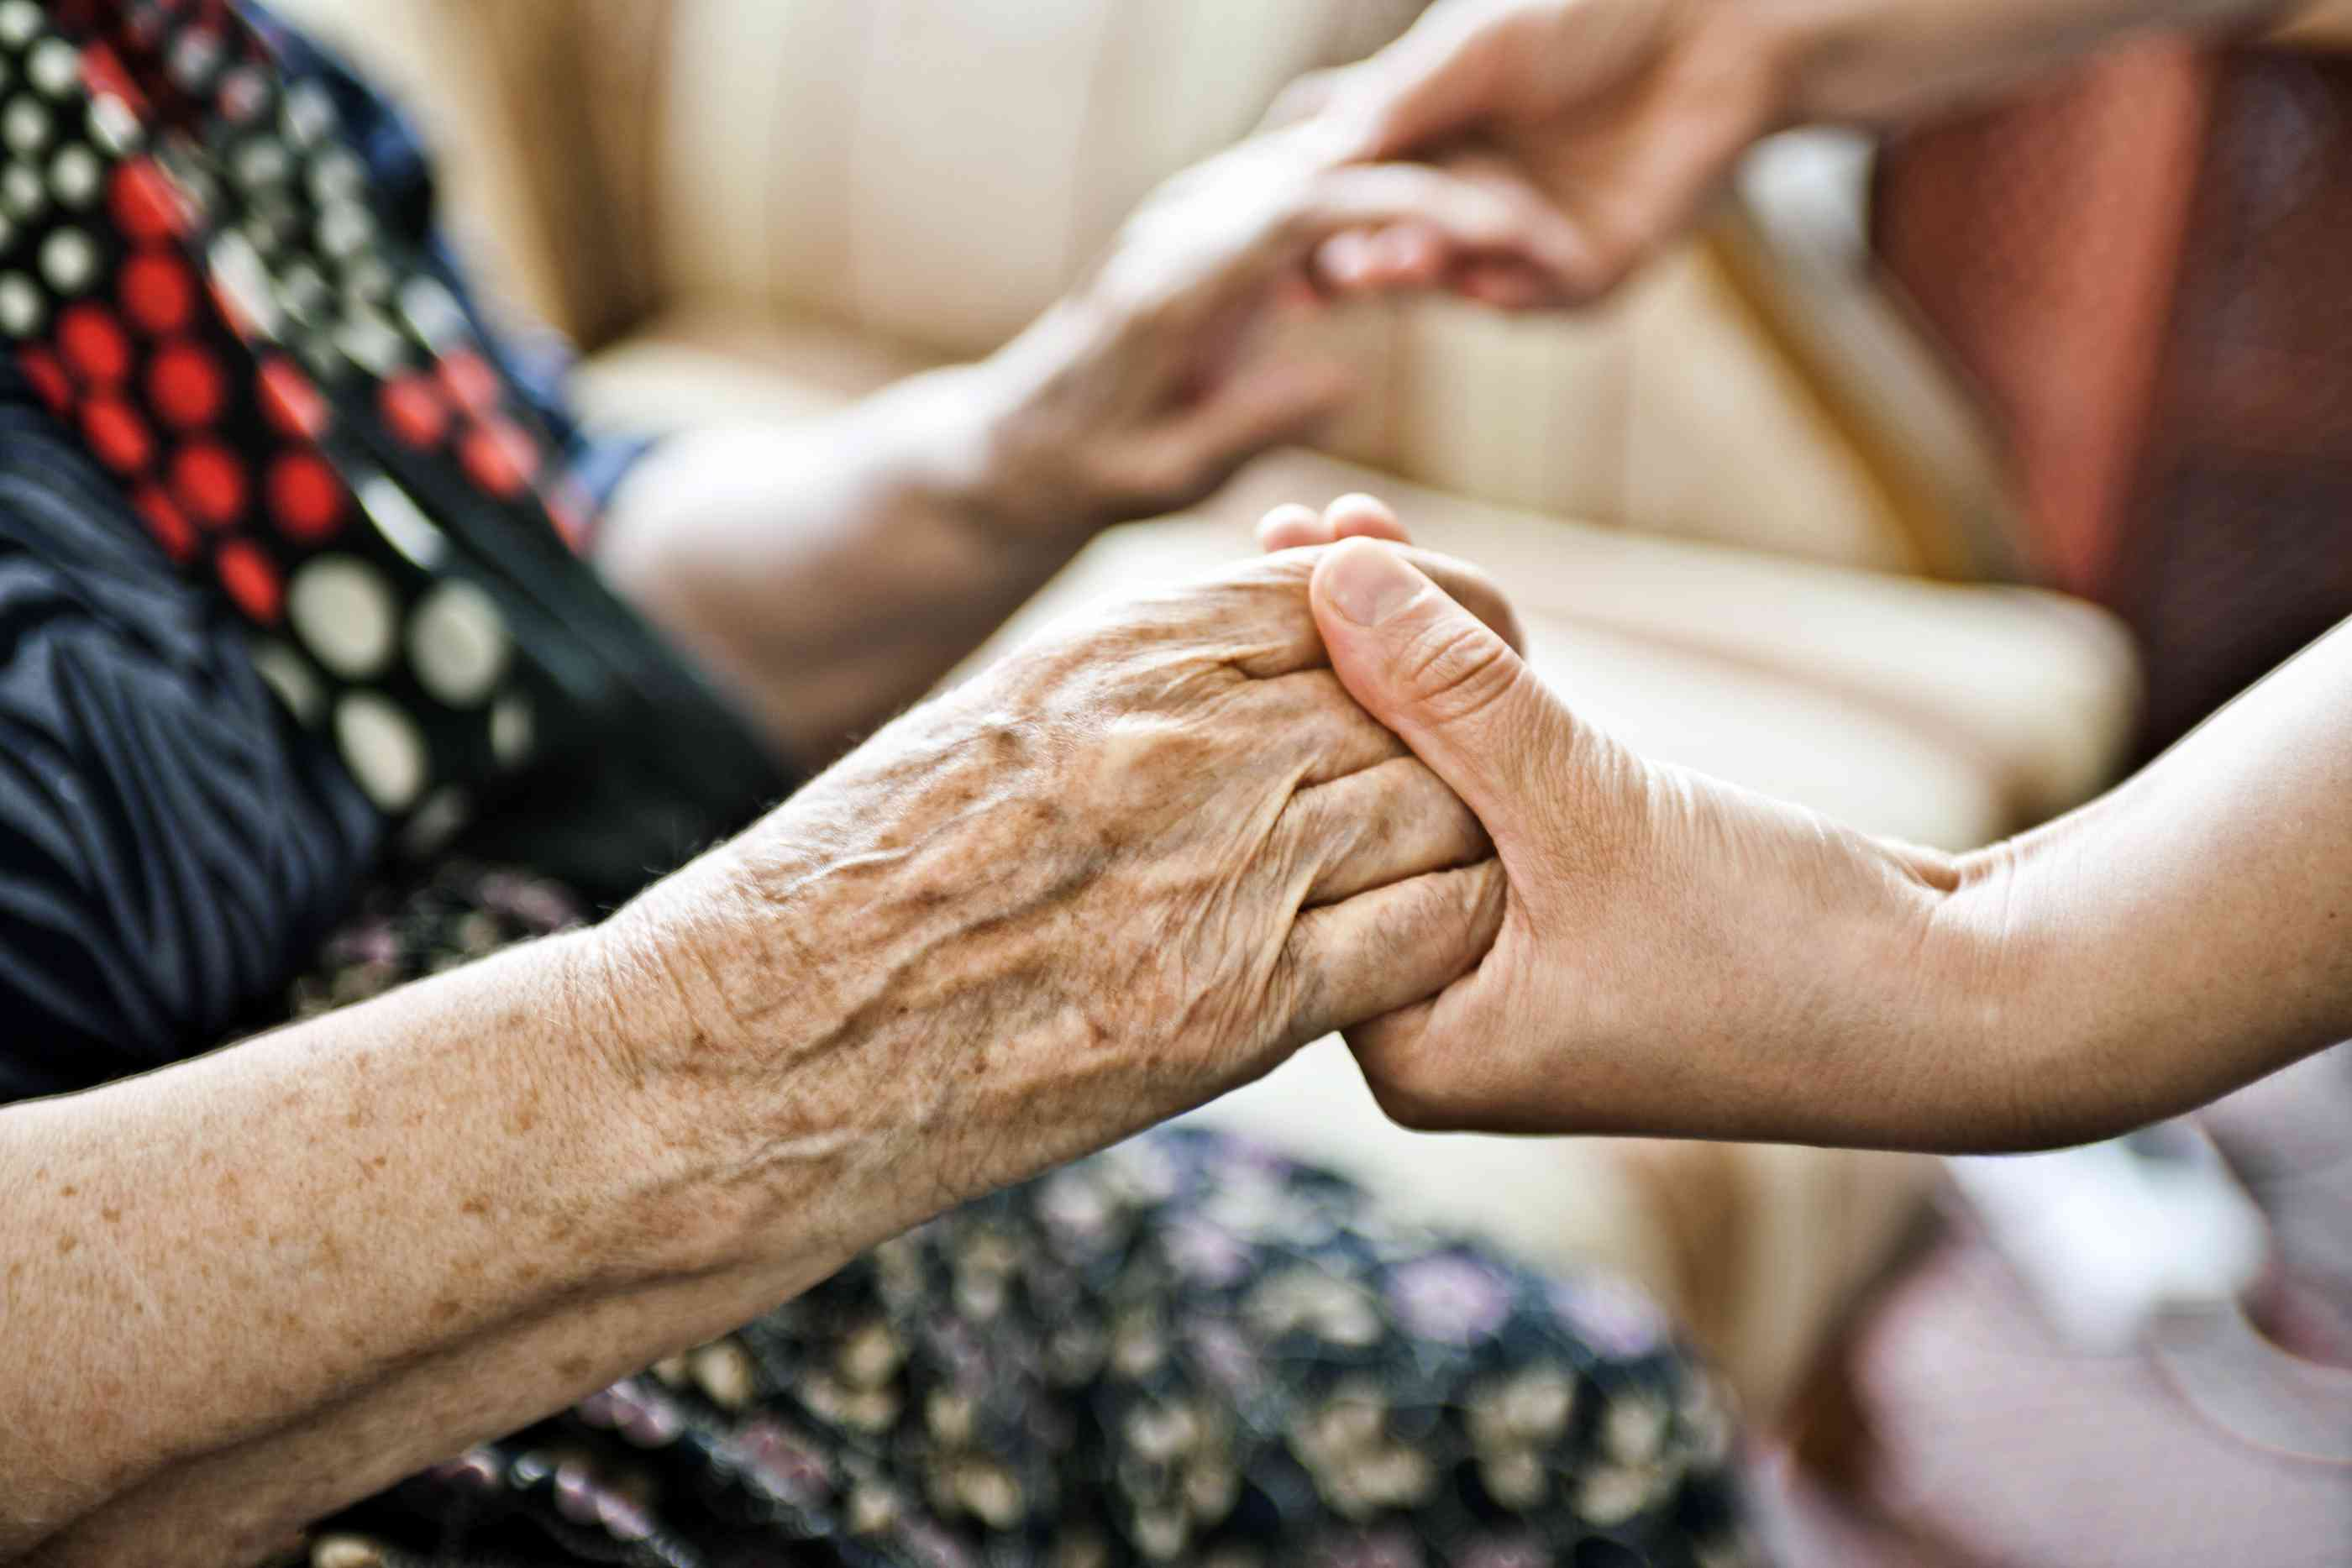 Older adult holding hands with another person